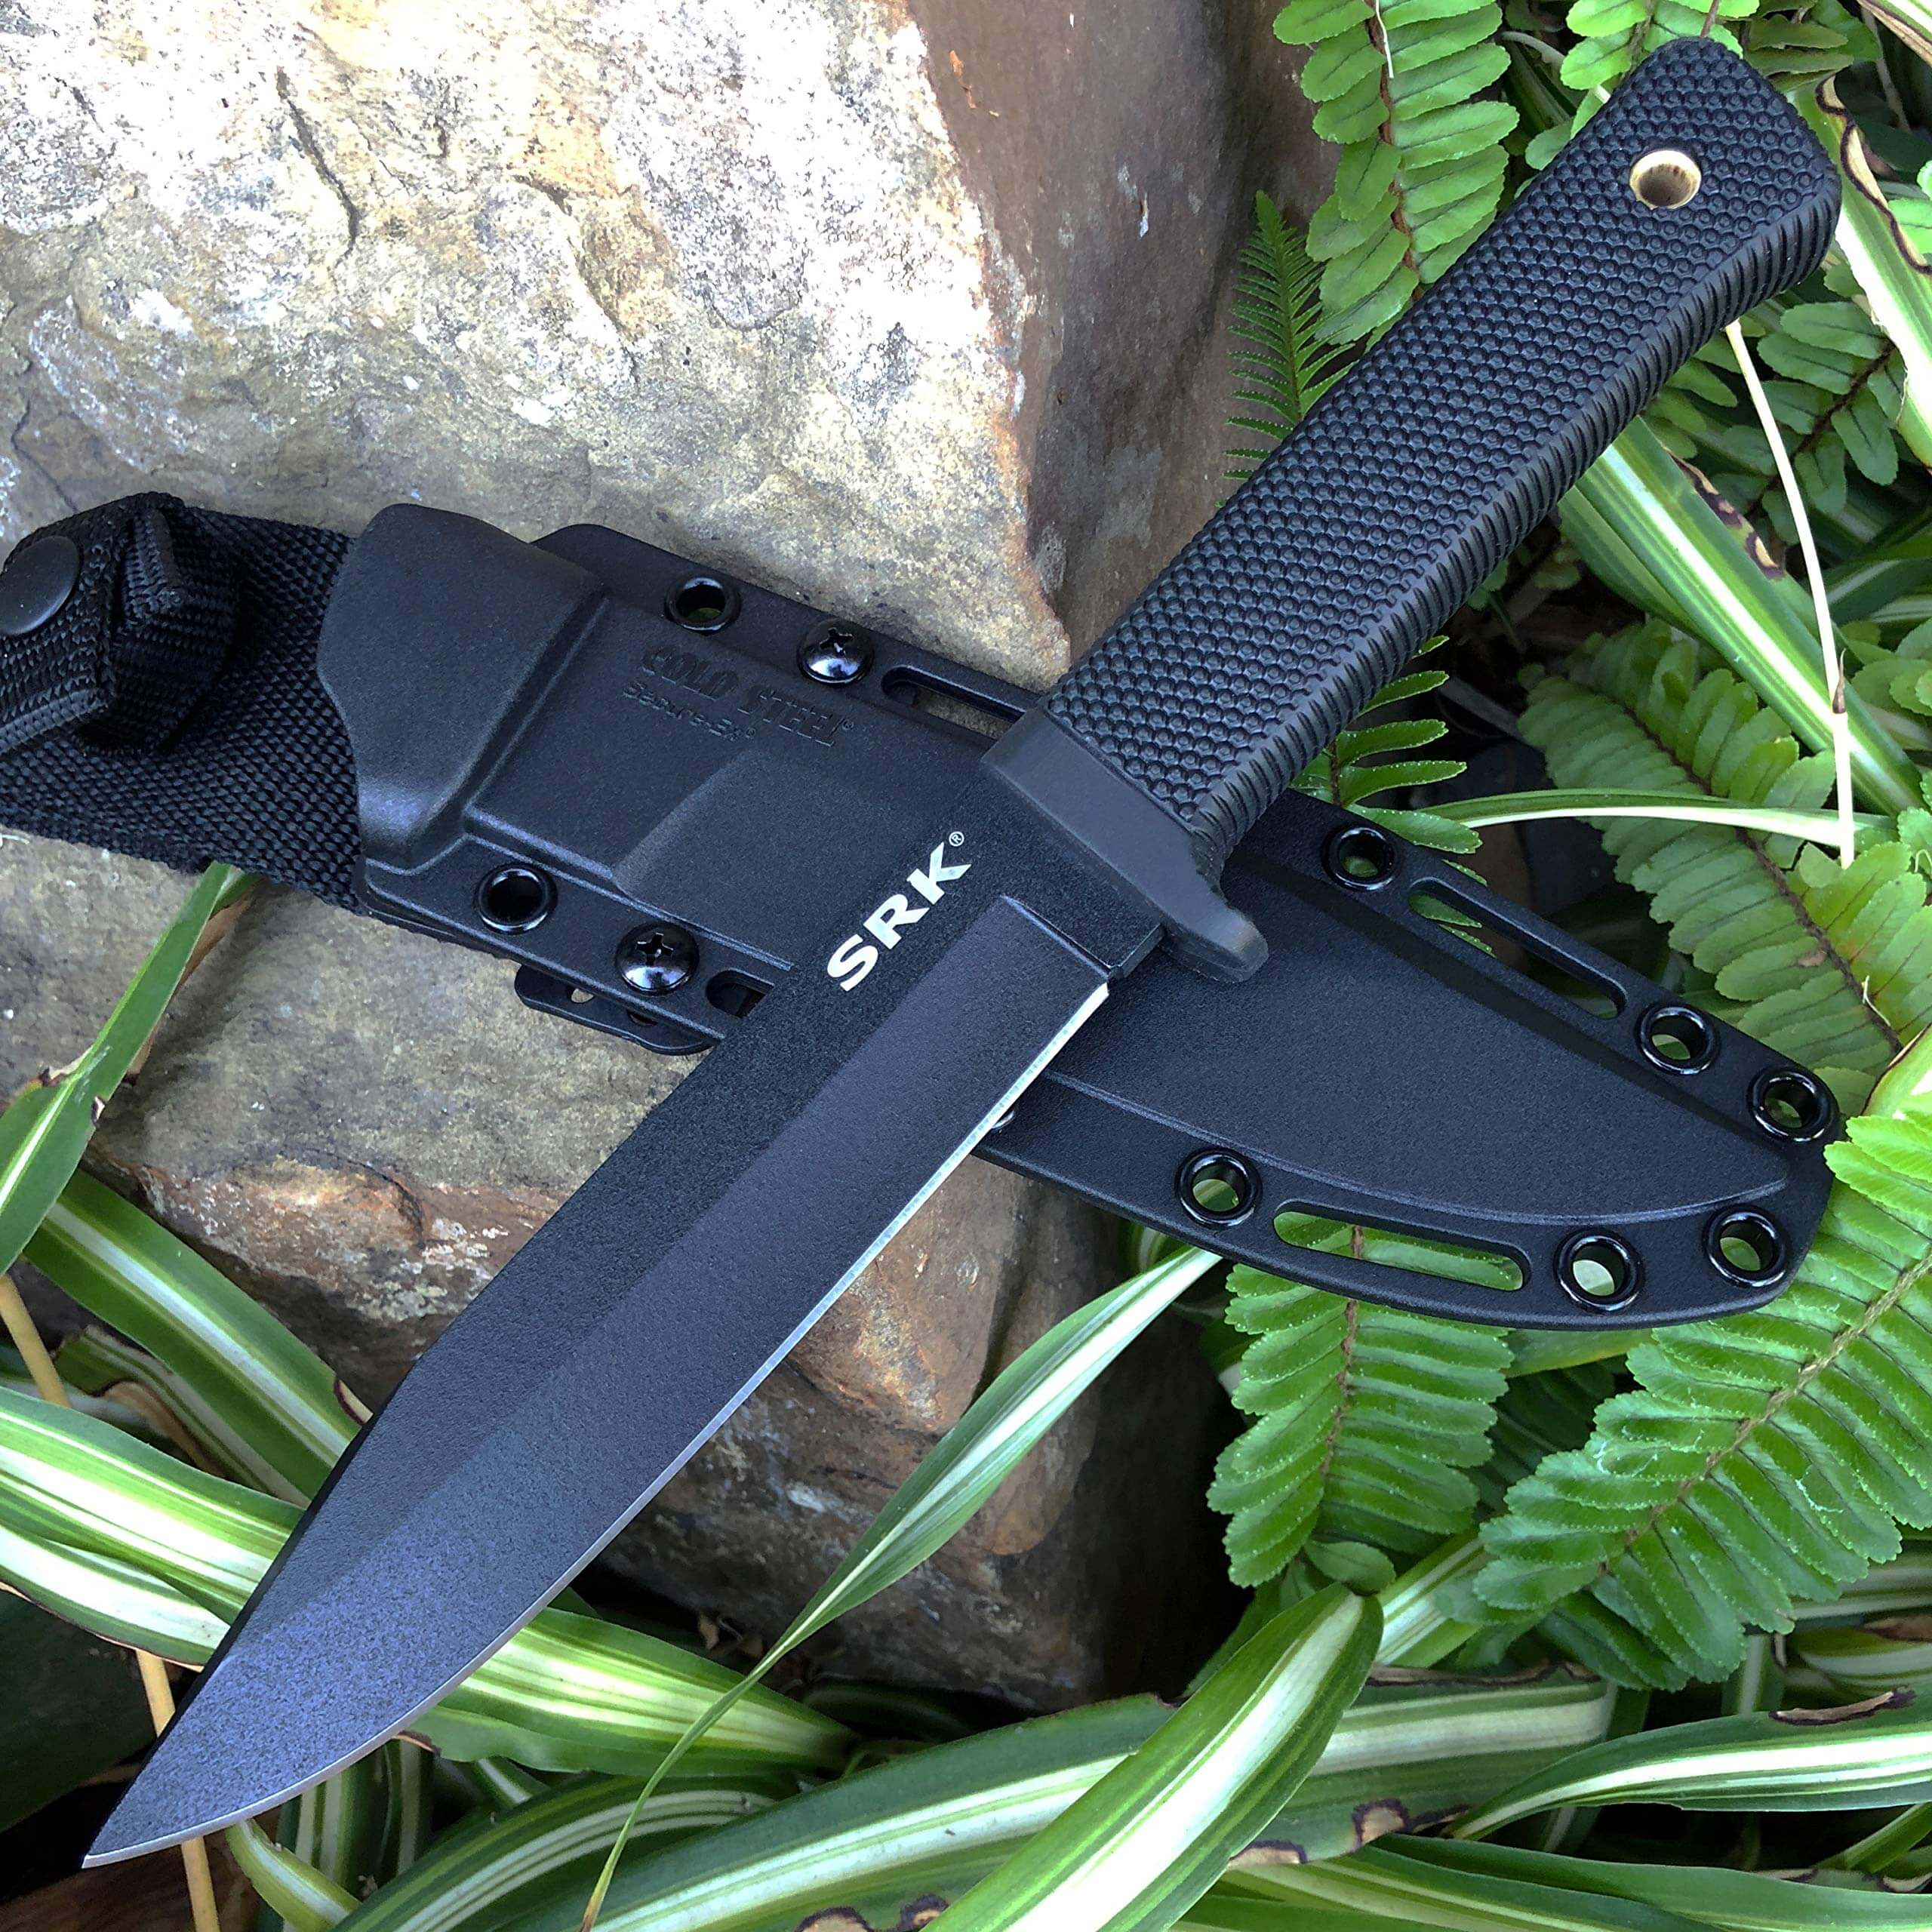 Cold Steel SRK Survival Rescue, bush knife, bush craft, what is bushcraft